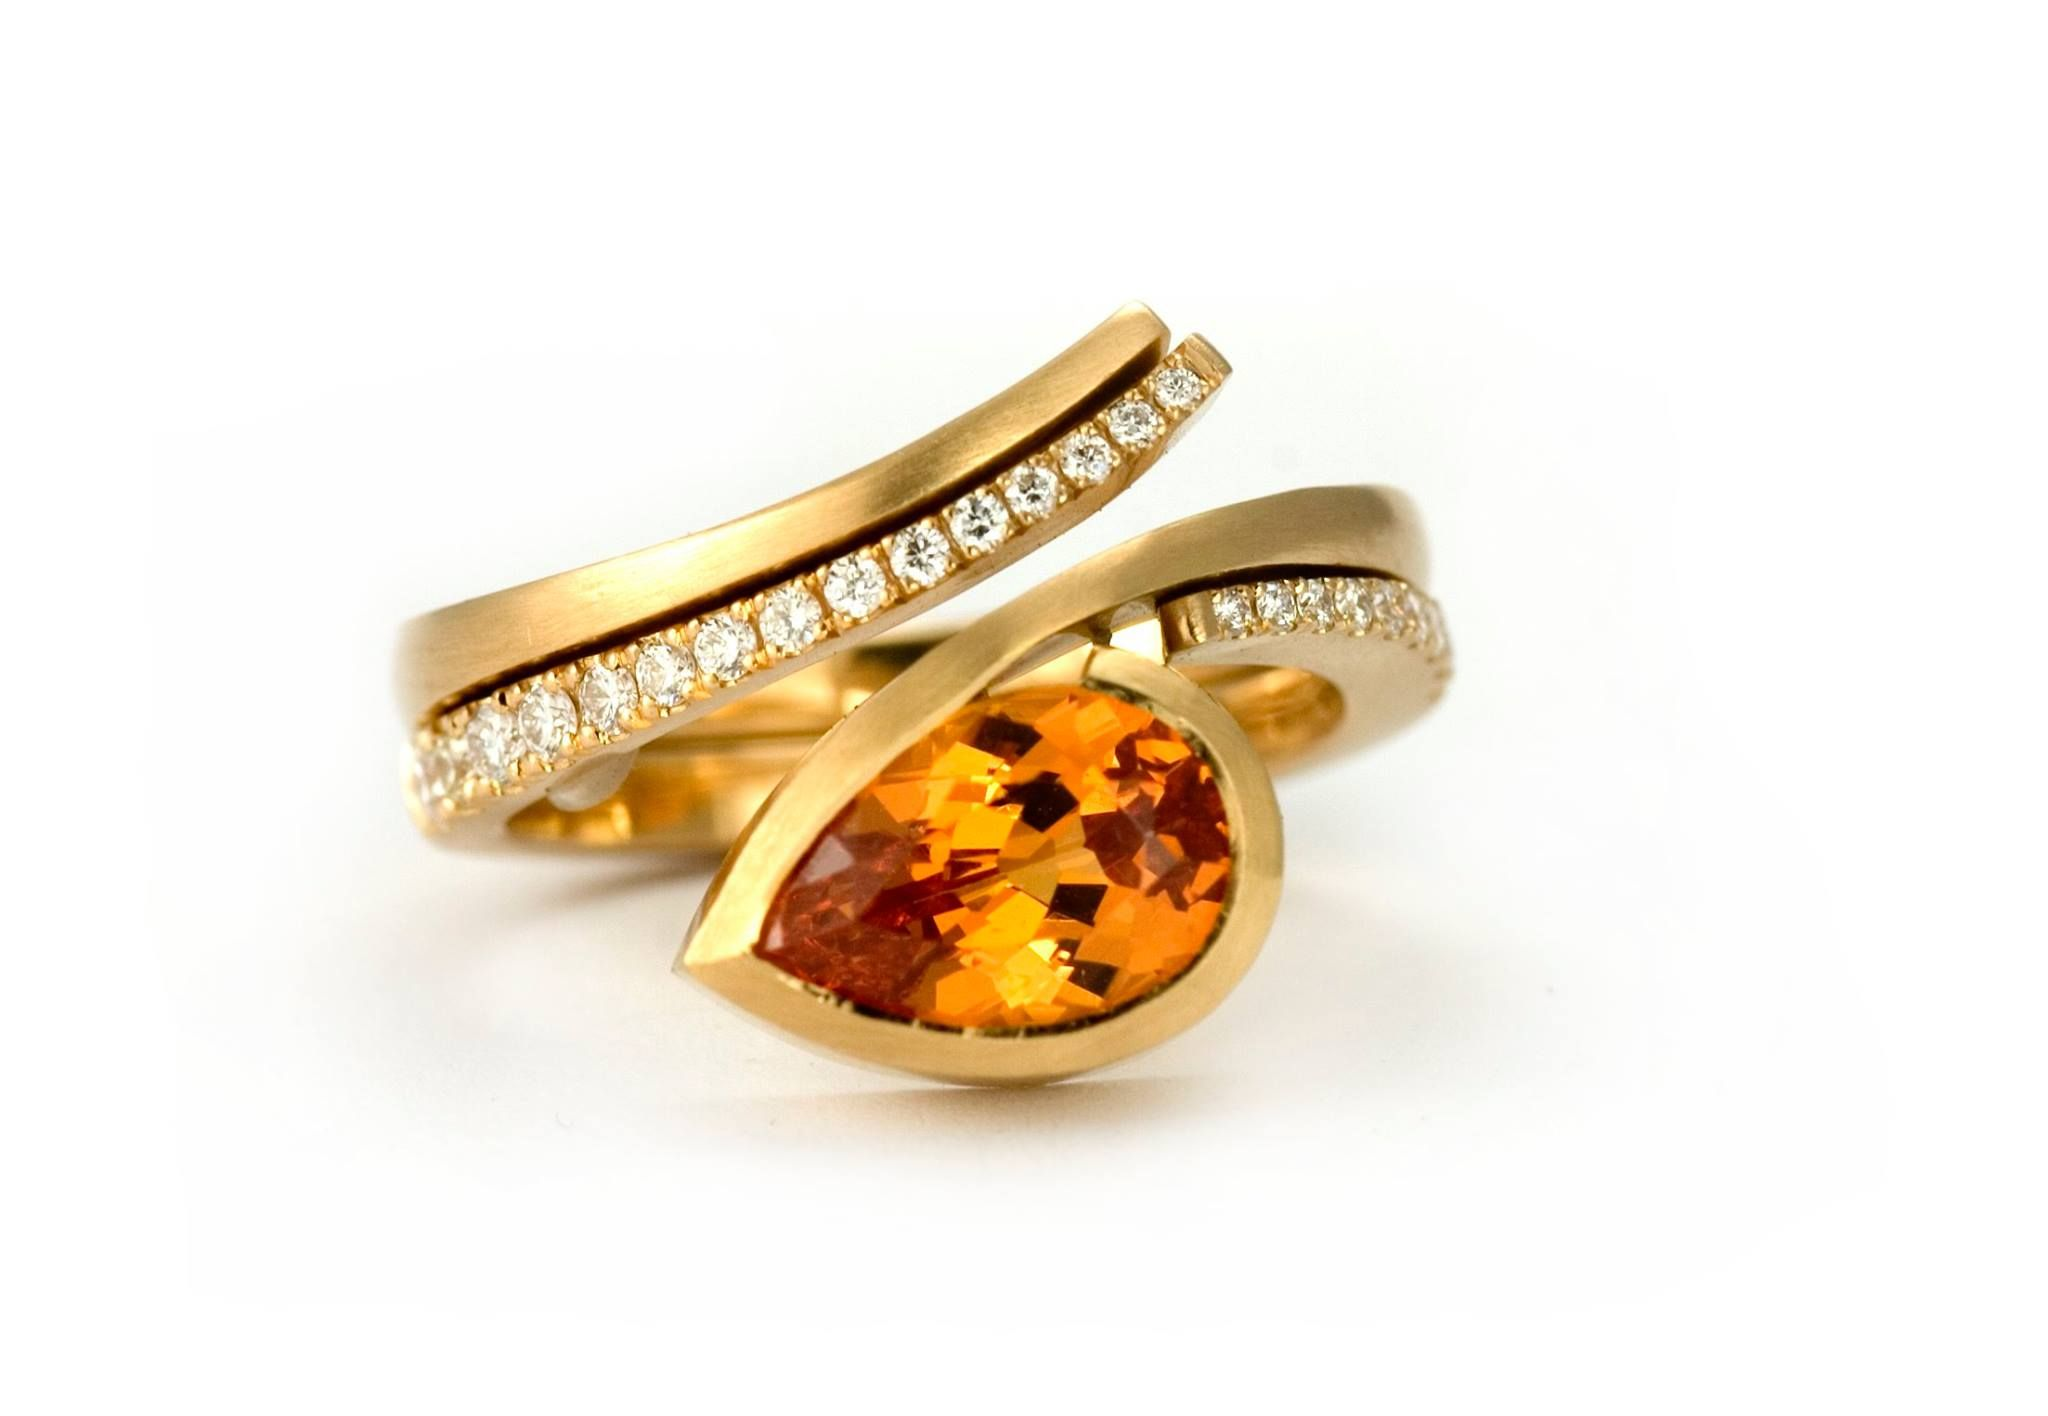 jewellery ring harris rings shopify gold cocktail front amber citrine engagement melissa cut cushion products